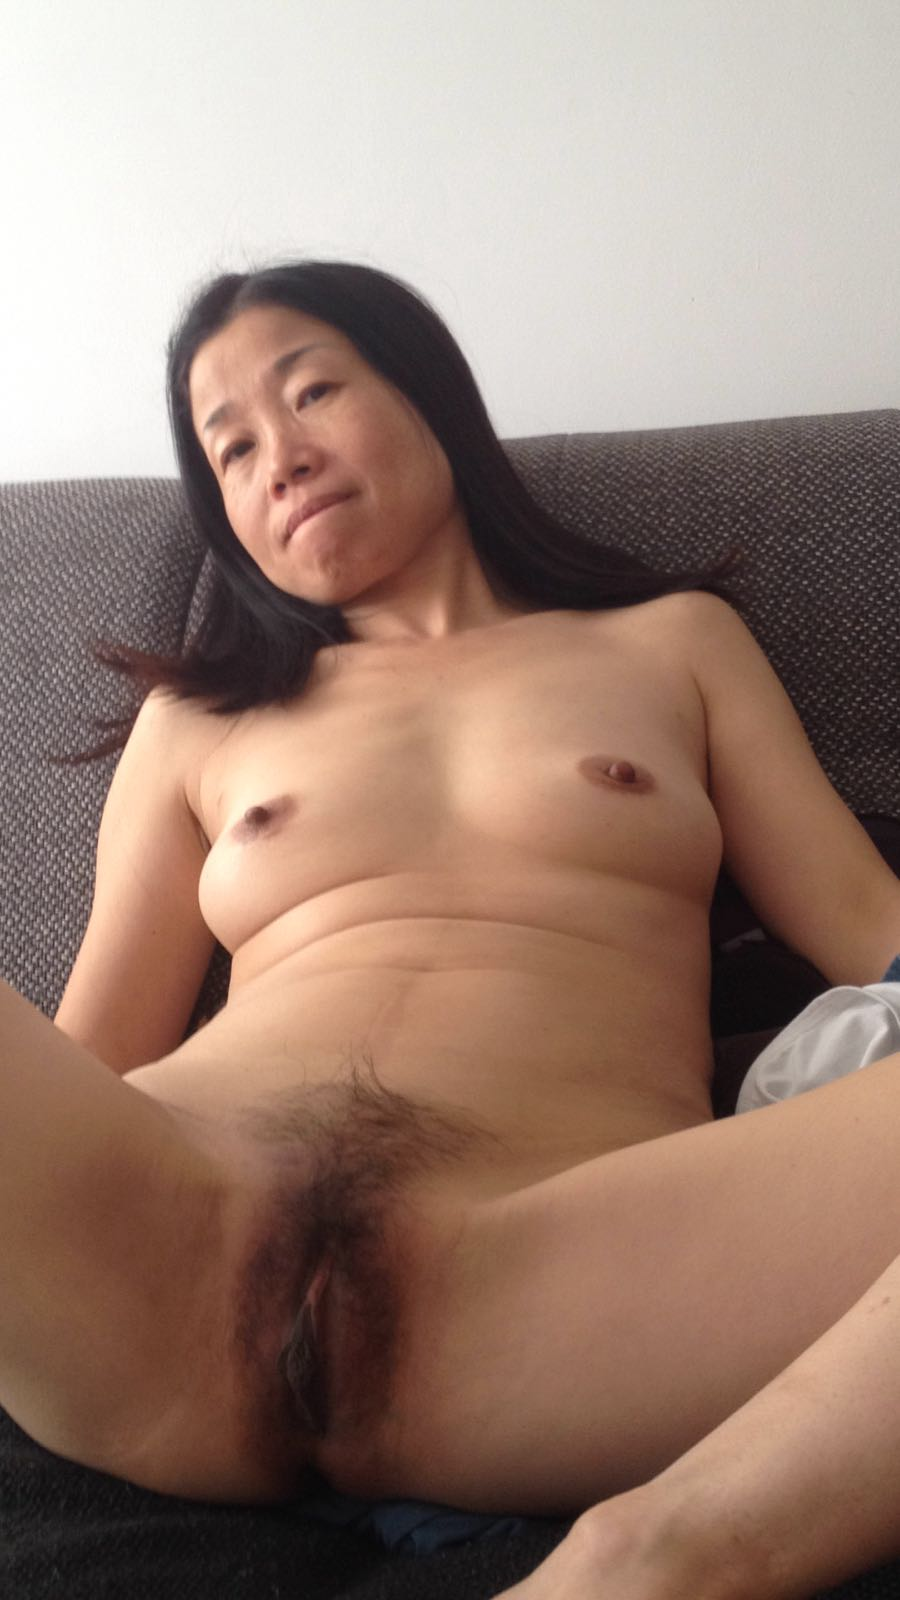 Nude older chinese women pictures